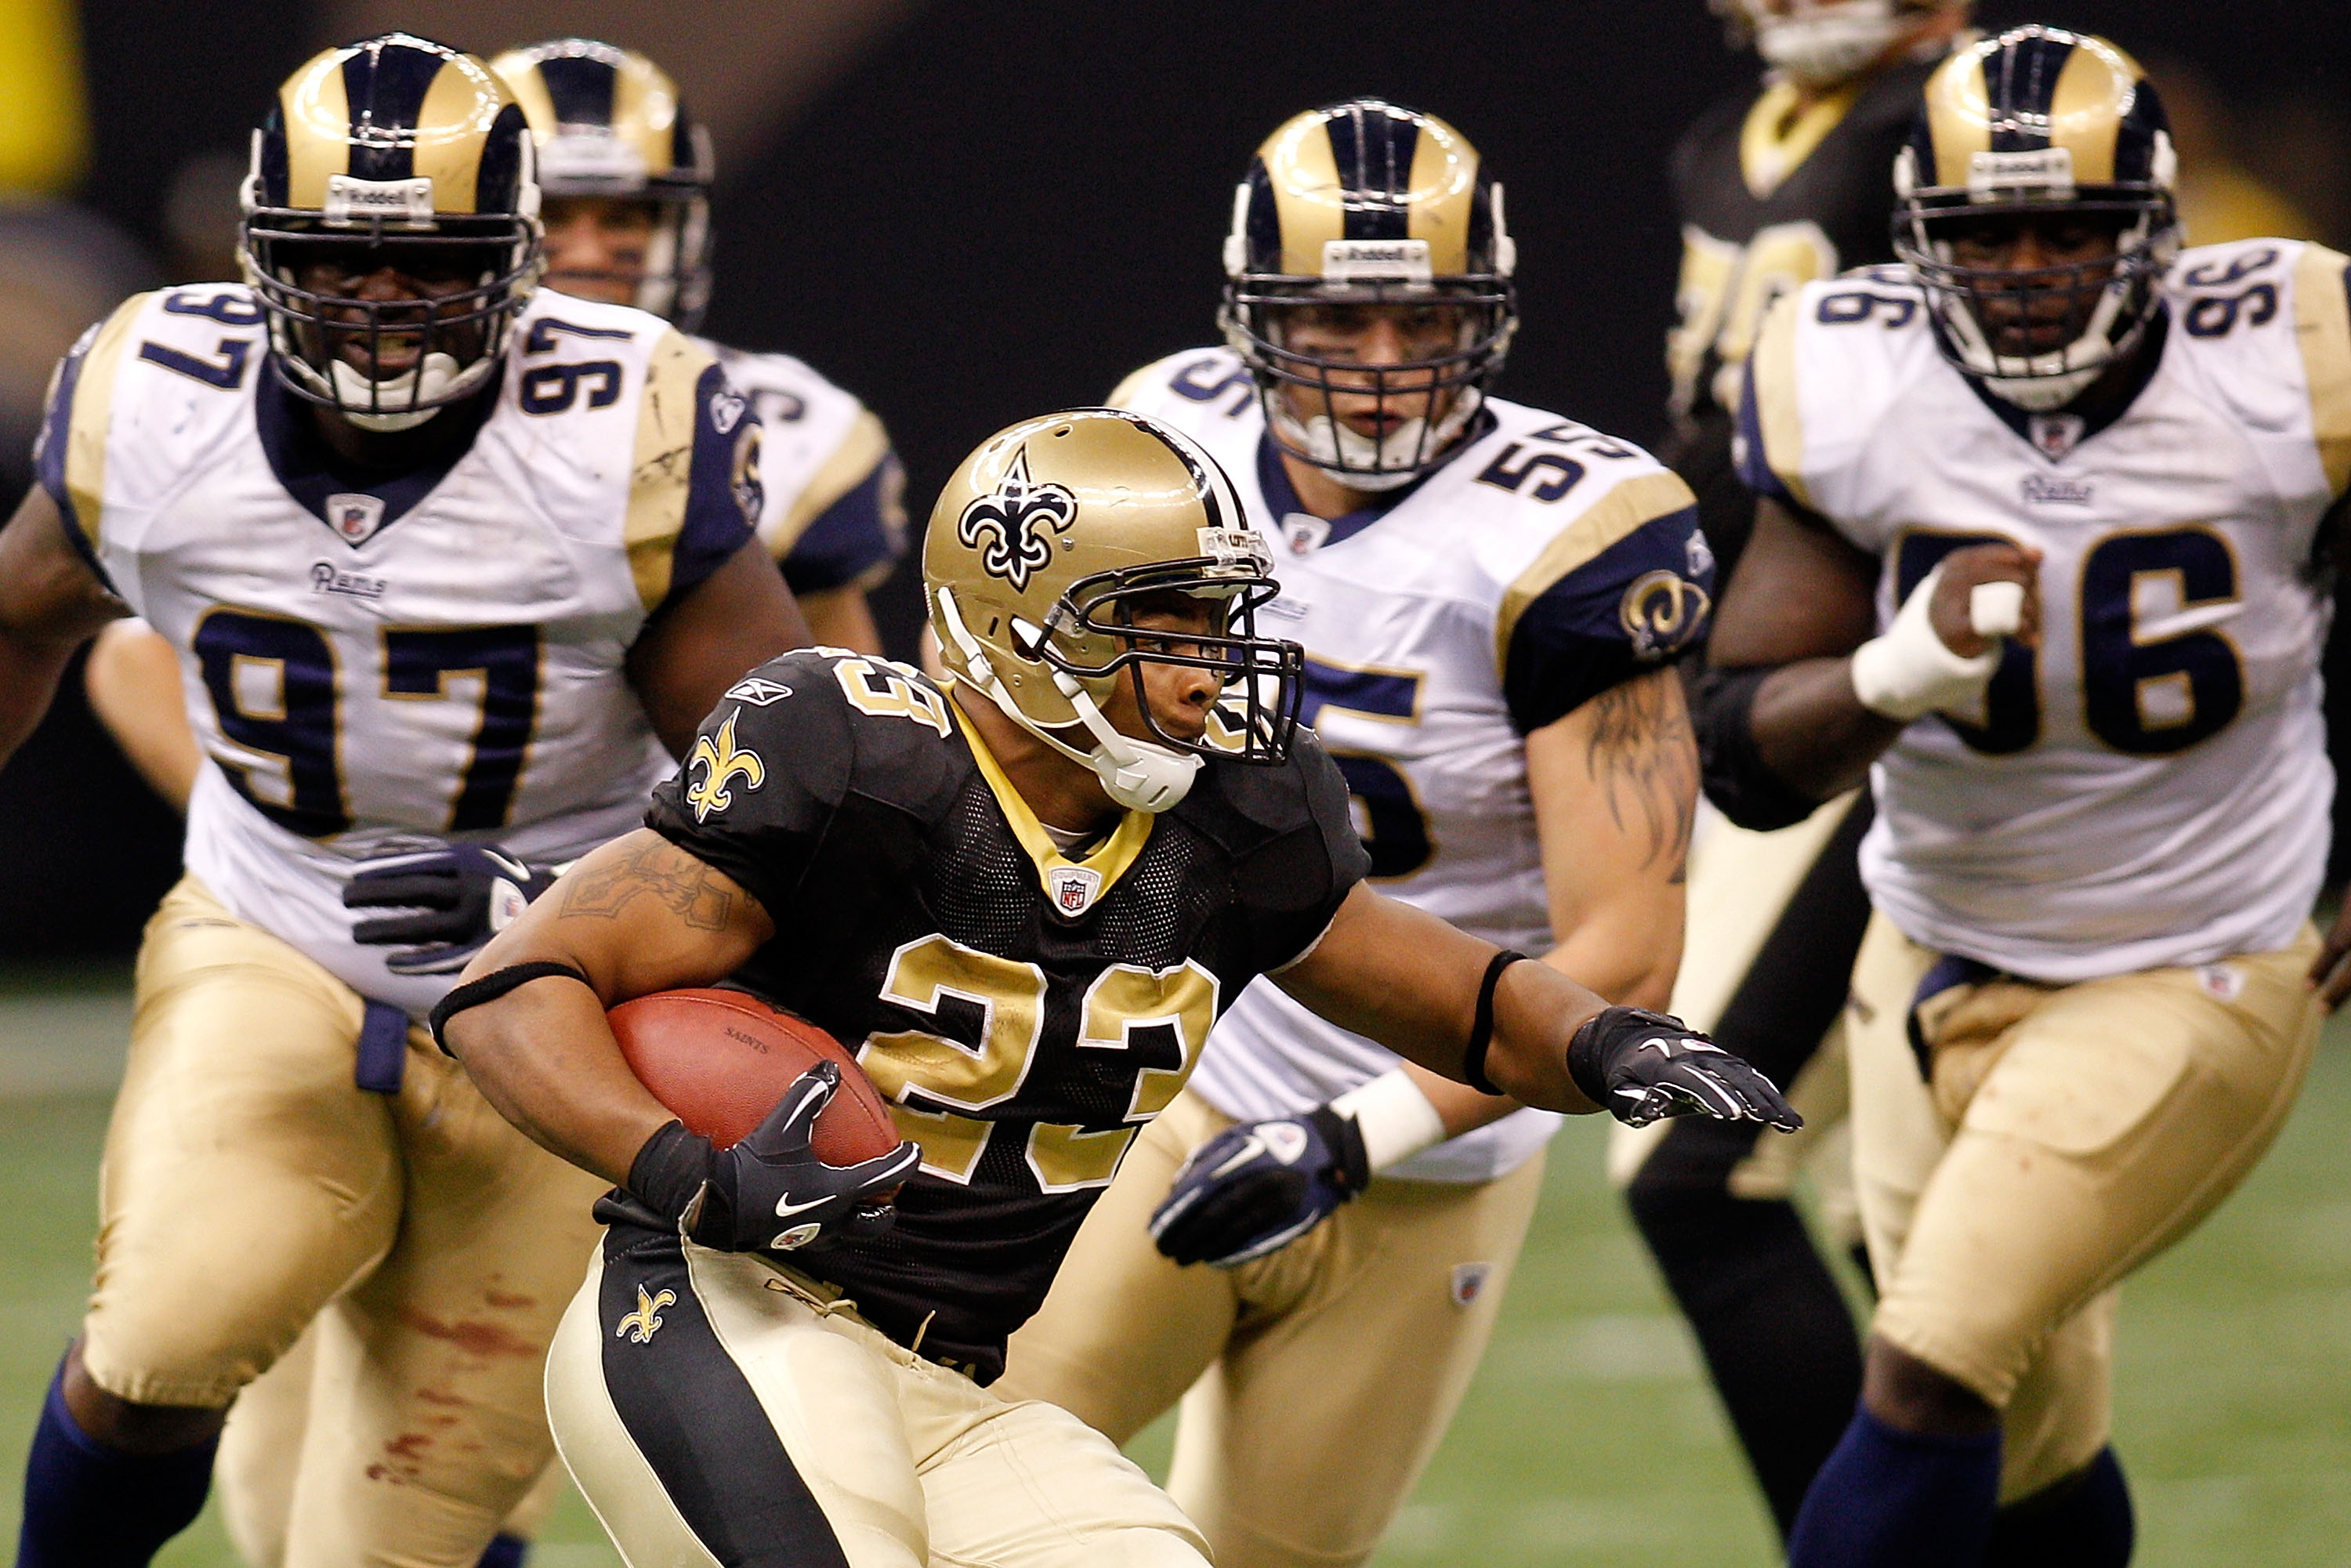 NEW ORLEANS, LA - DECEMBER 12:  Pierre Thomas #23 of the New Orleans Saints runs past the defense of the St. Louis Rams at the Louisiana Superdome on December 12, 2010 in New Orleans, Louisiana. The Saints defeated the Rams 31-13.  (Photo by Chris Graythe